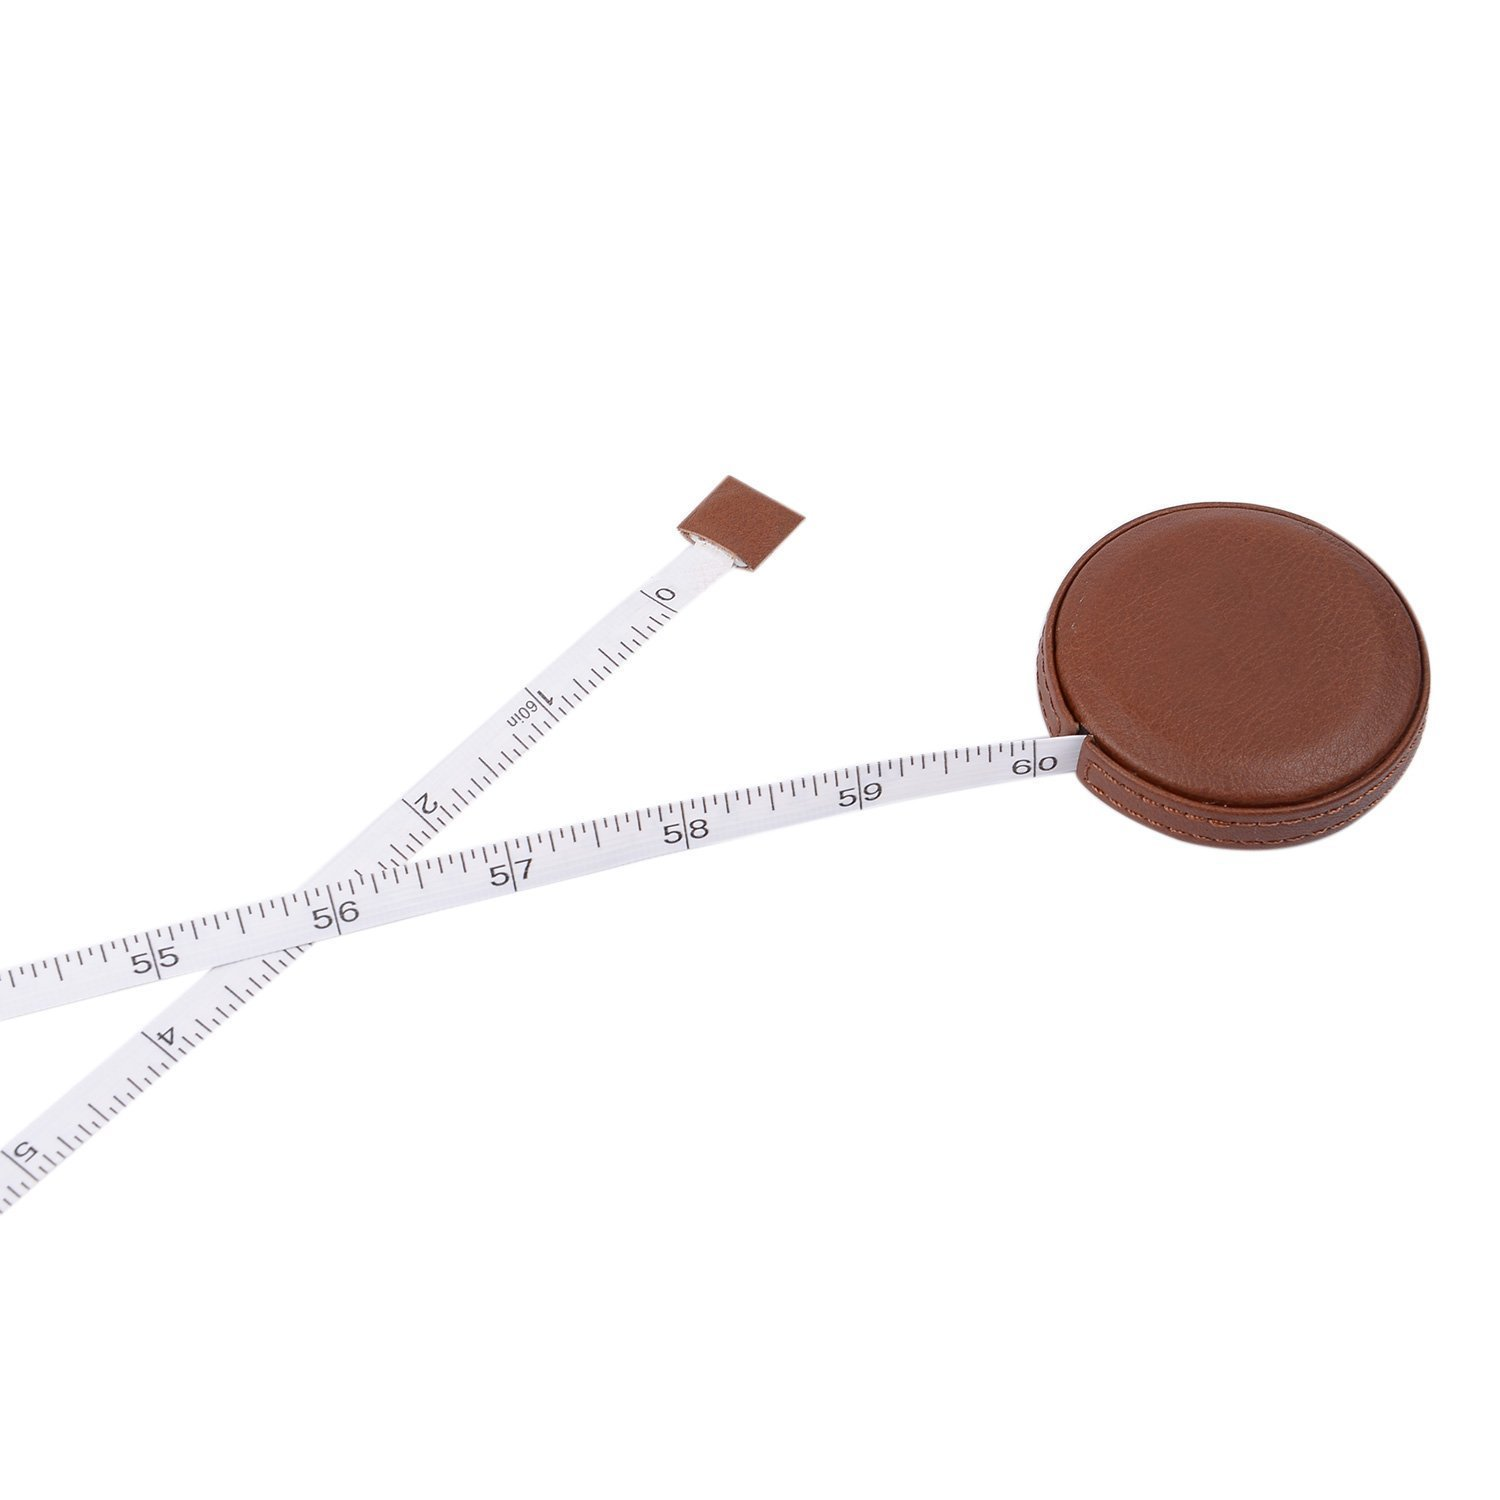 Deep Brown 2PCSLeather Tape Measure Retractable Small Measuring Tape for Cloth Body Sewing Tailor Ruler Waist Fit in a Pocket Inch//cm Double Sided Plastic Soft Tape Measure for Medical